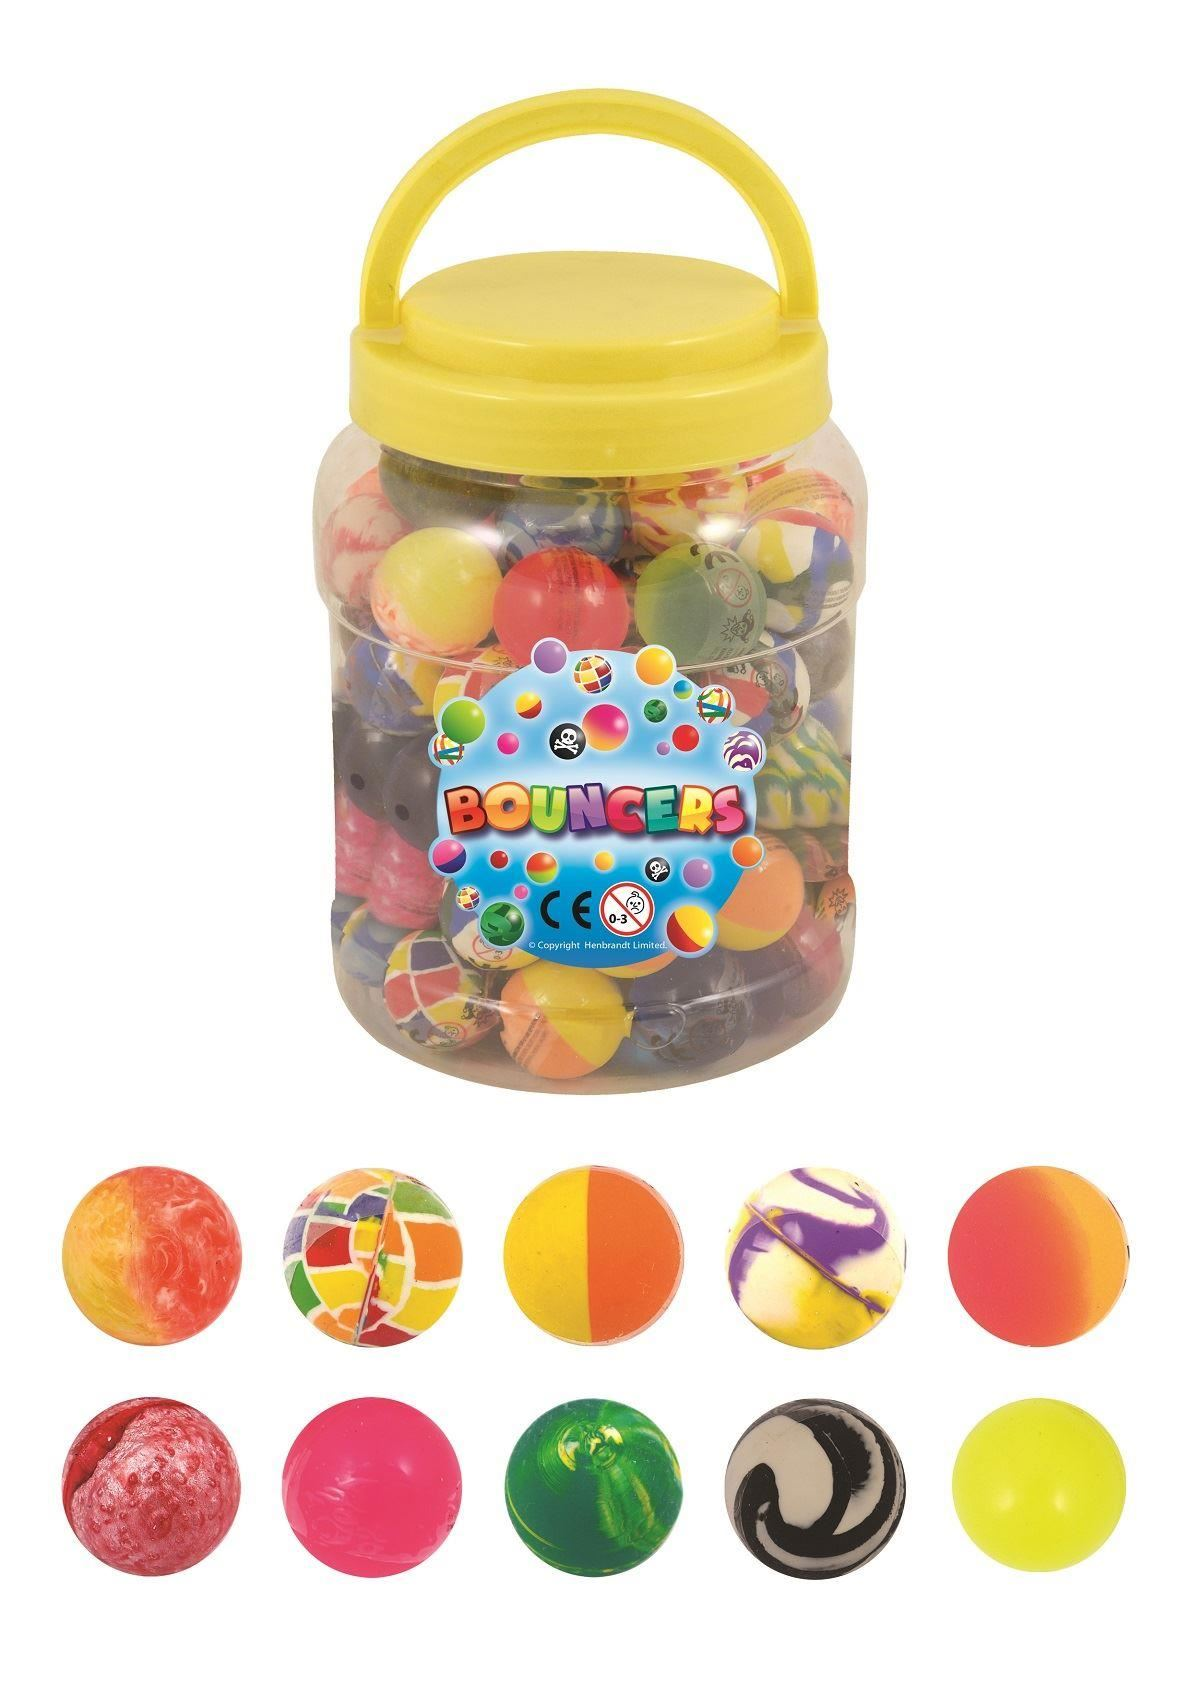 35mm Bouncy Large Jet Balls Bright Bouncers Kids Party Bag Pinata